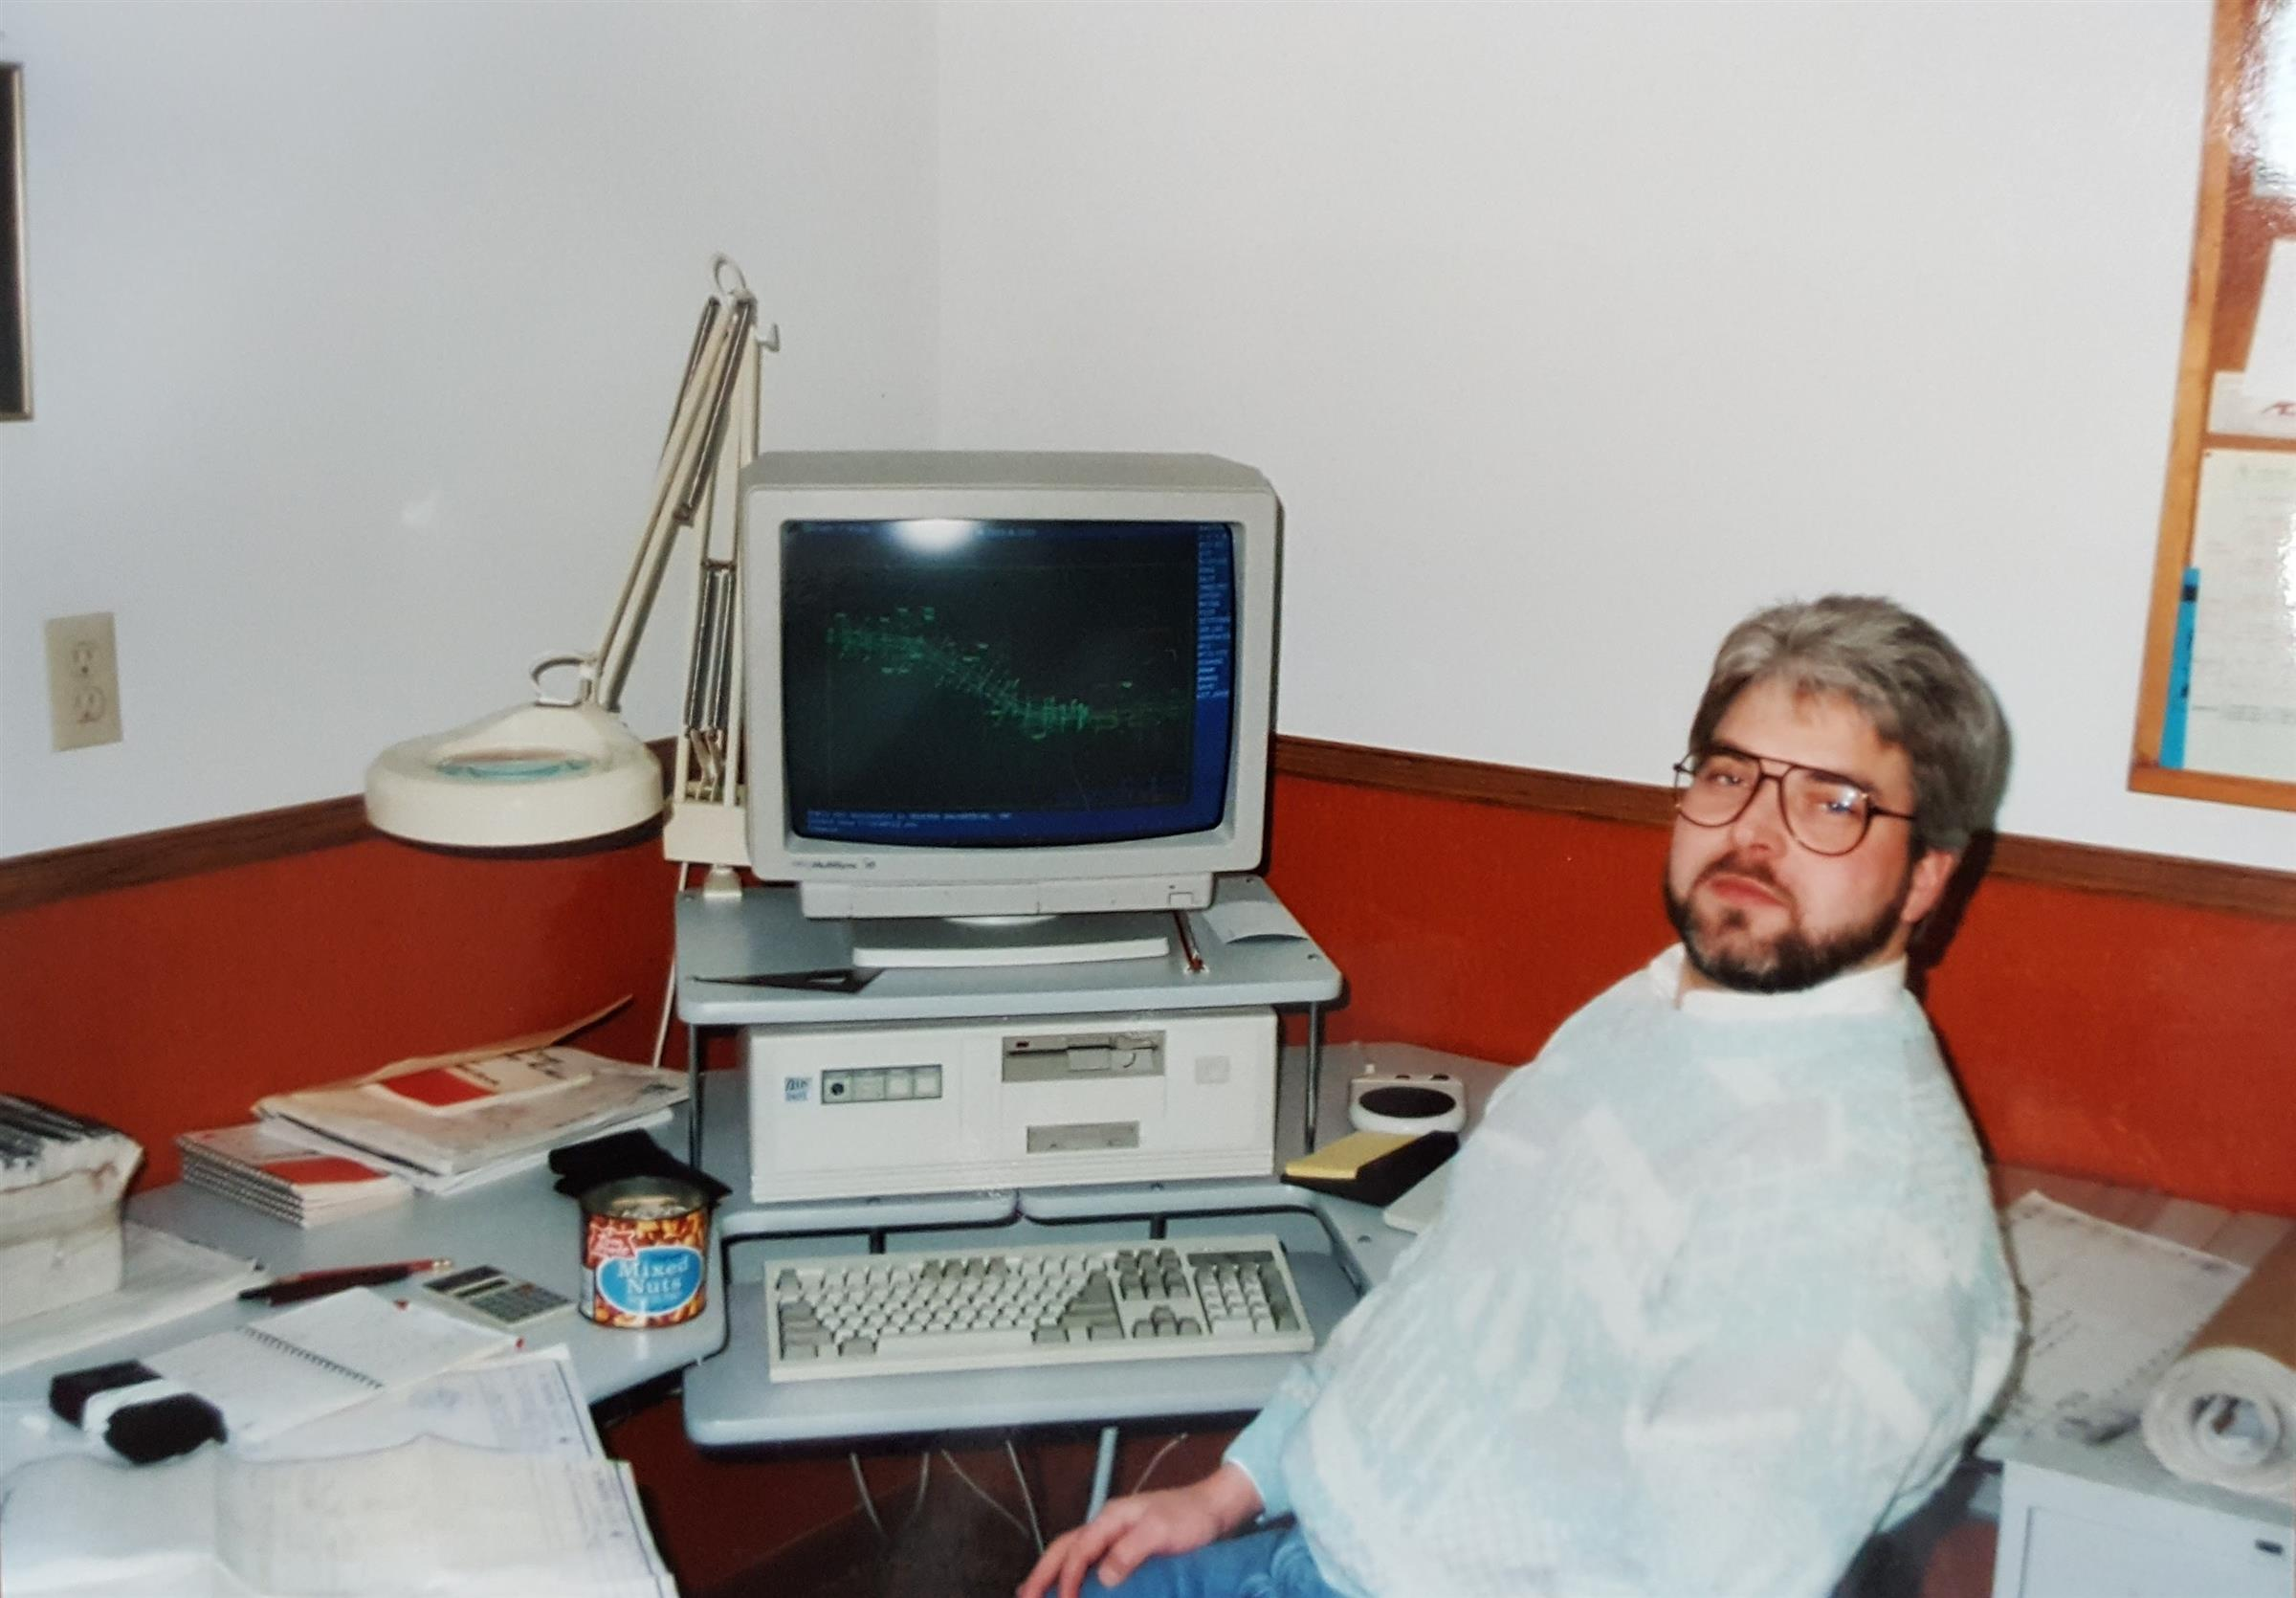 Chuck working on HEI's first CAD computer in 1993